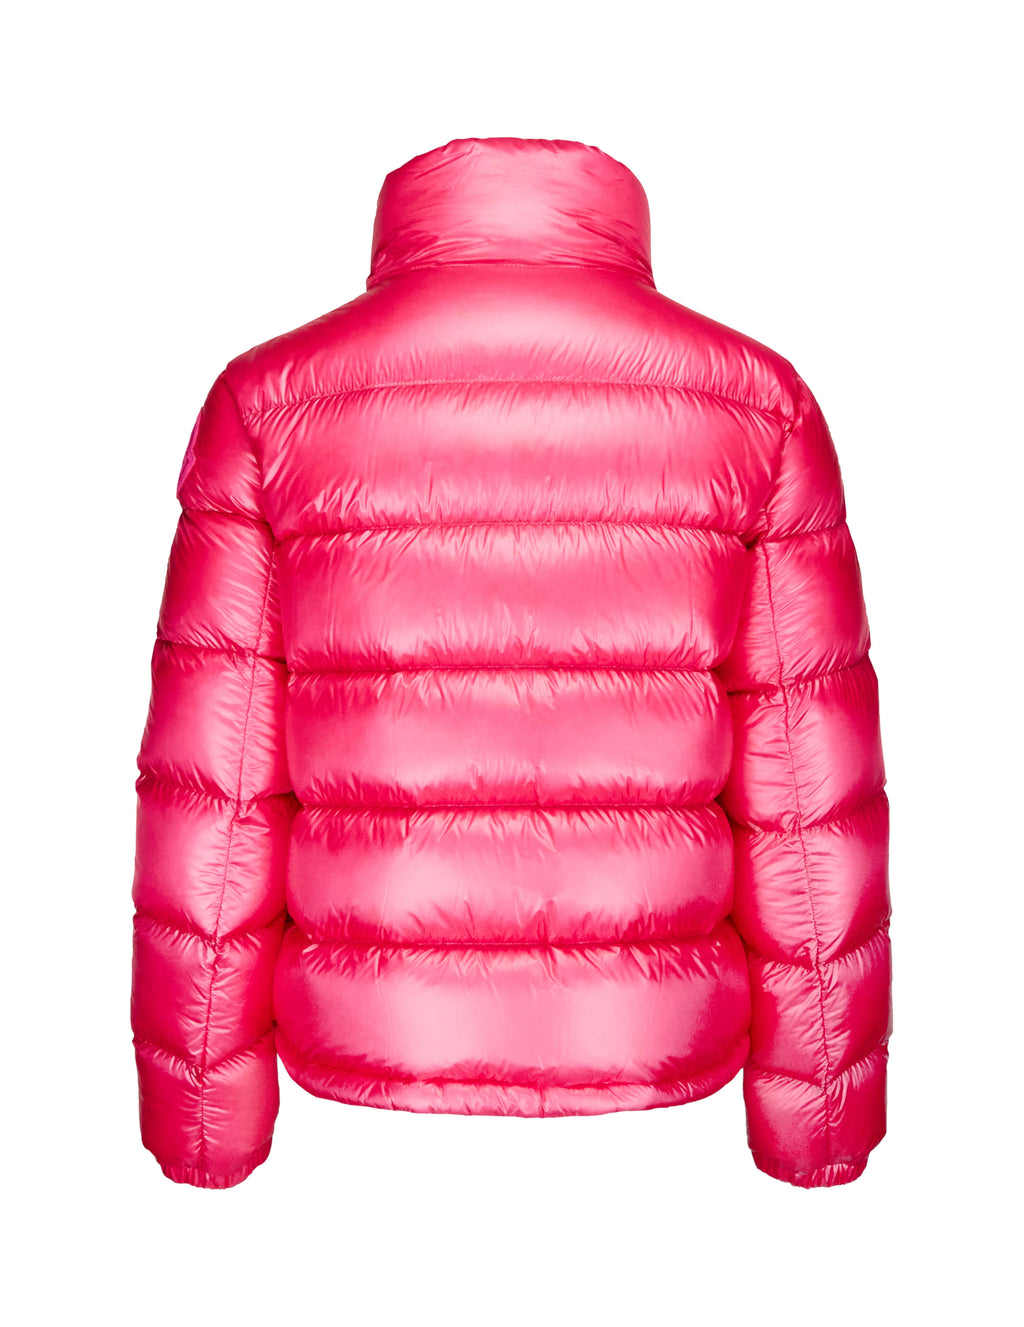 Moncler Women's Giulio Fashion Pink Copenhague Jacket 4536900C0004522